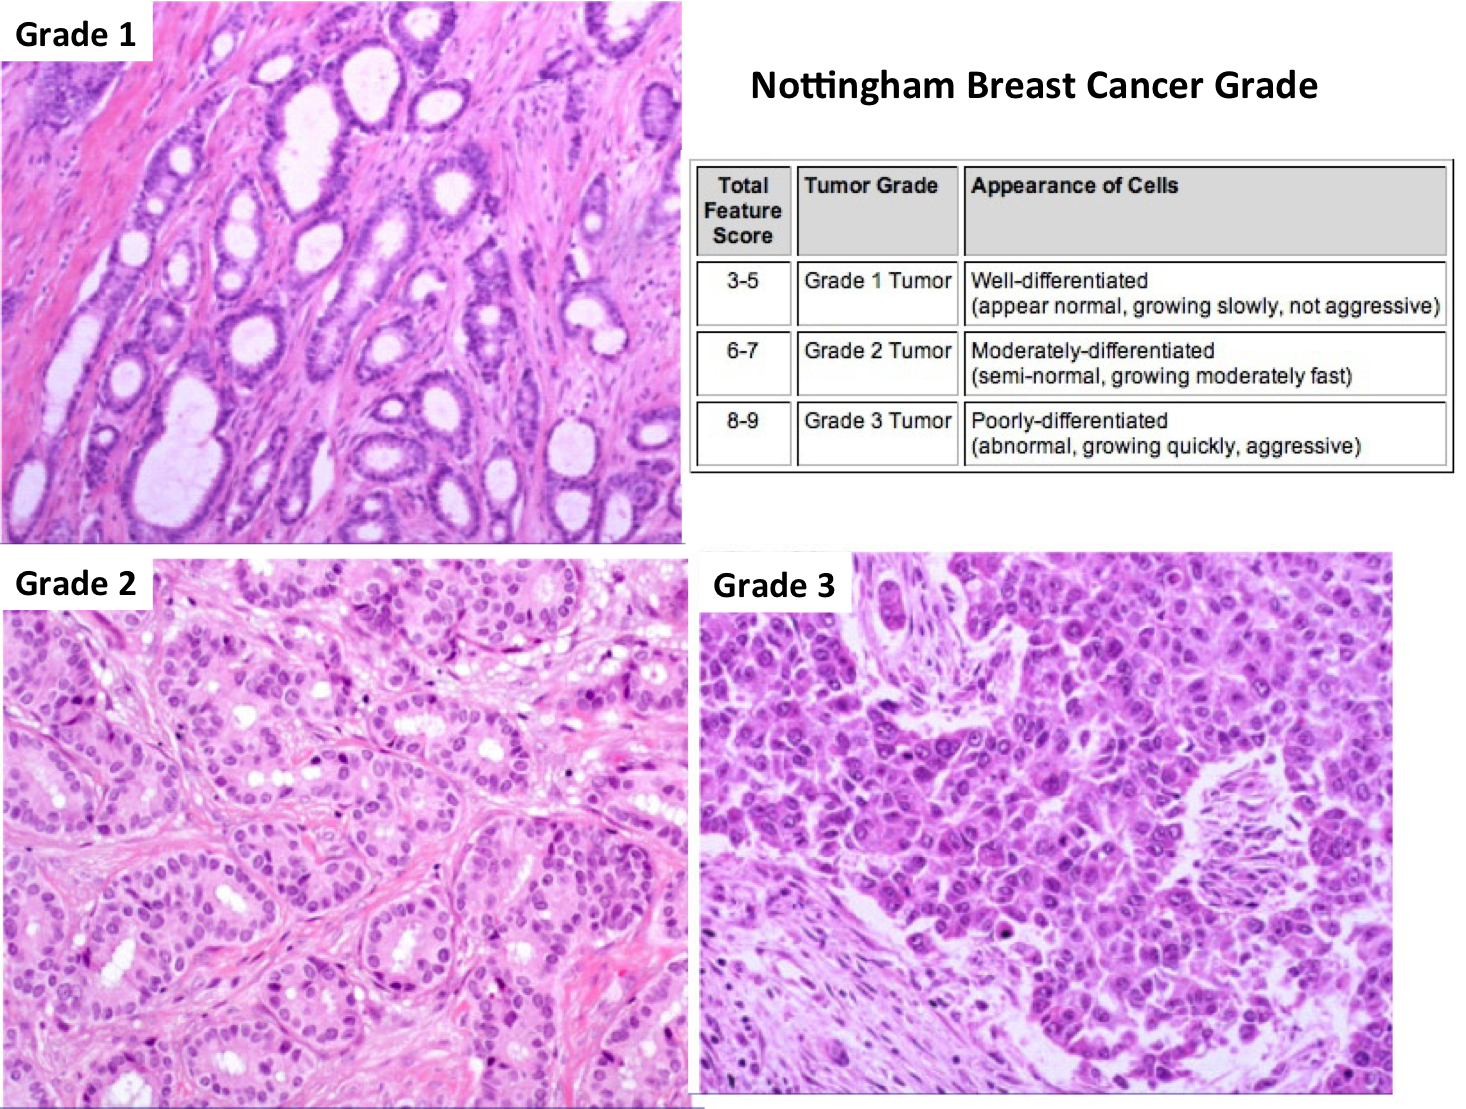 Grading of breast cancer tumors